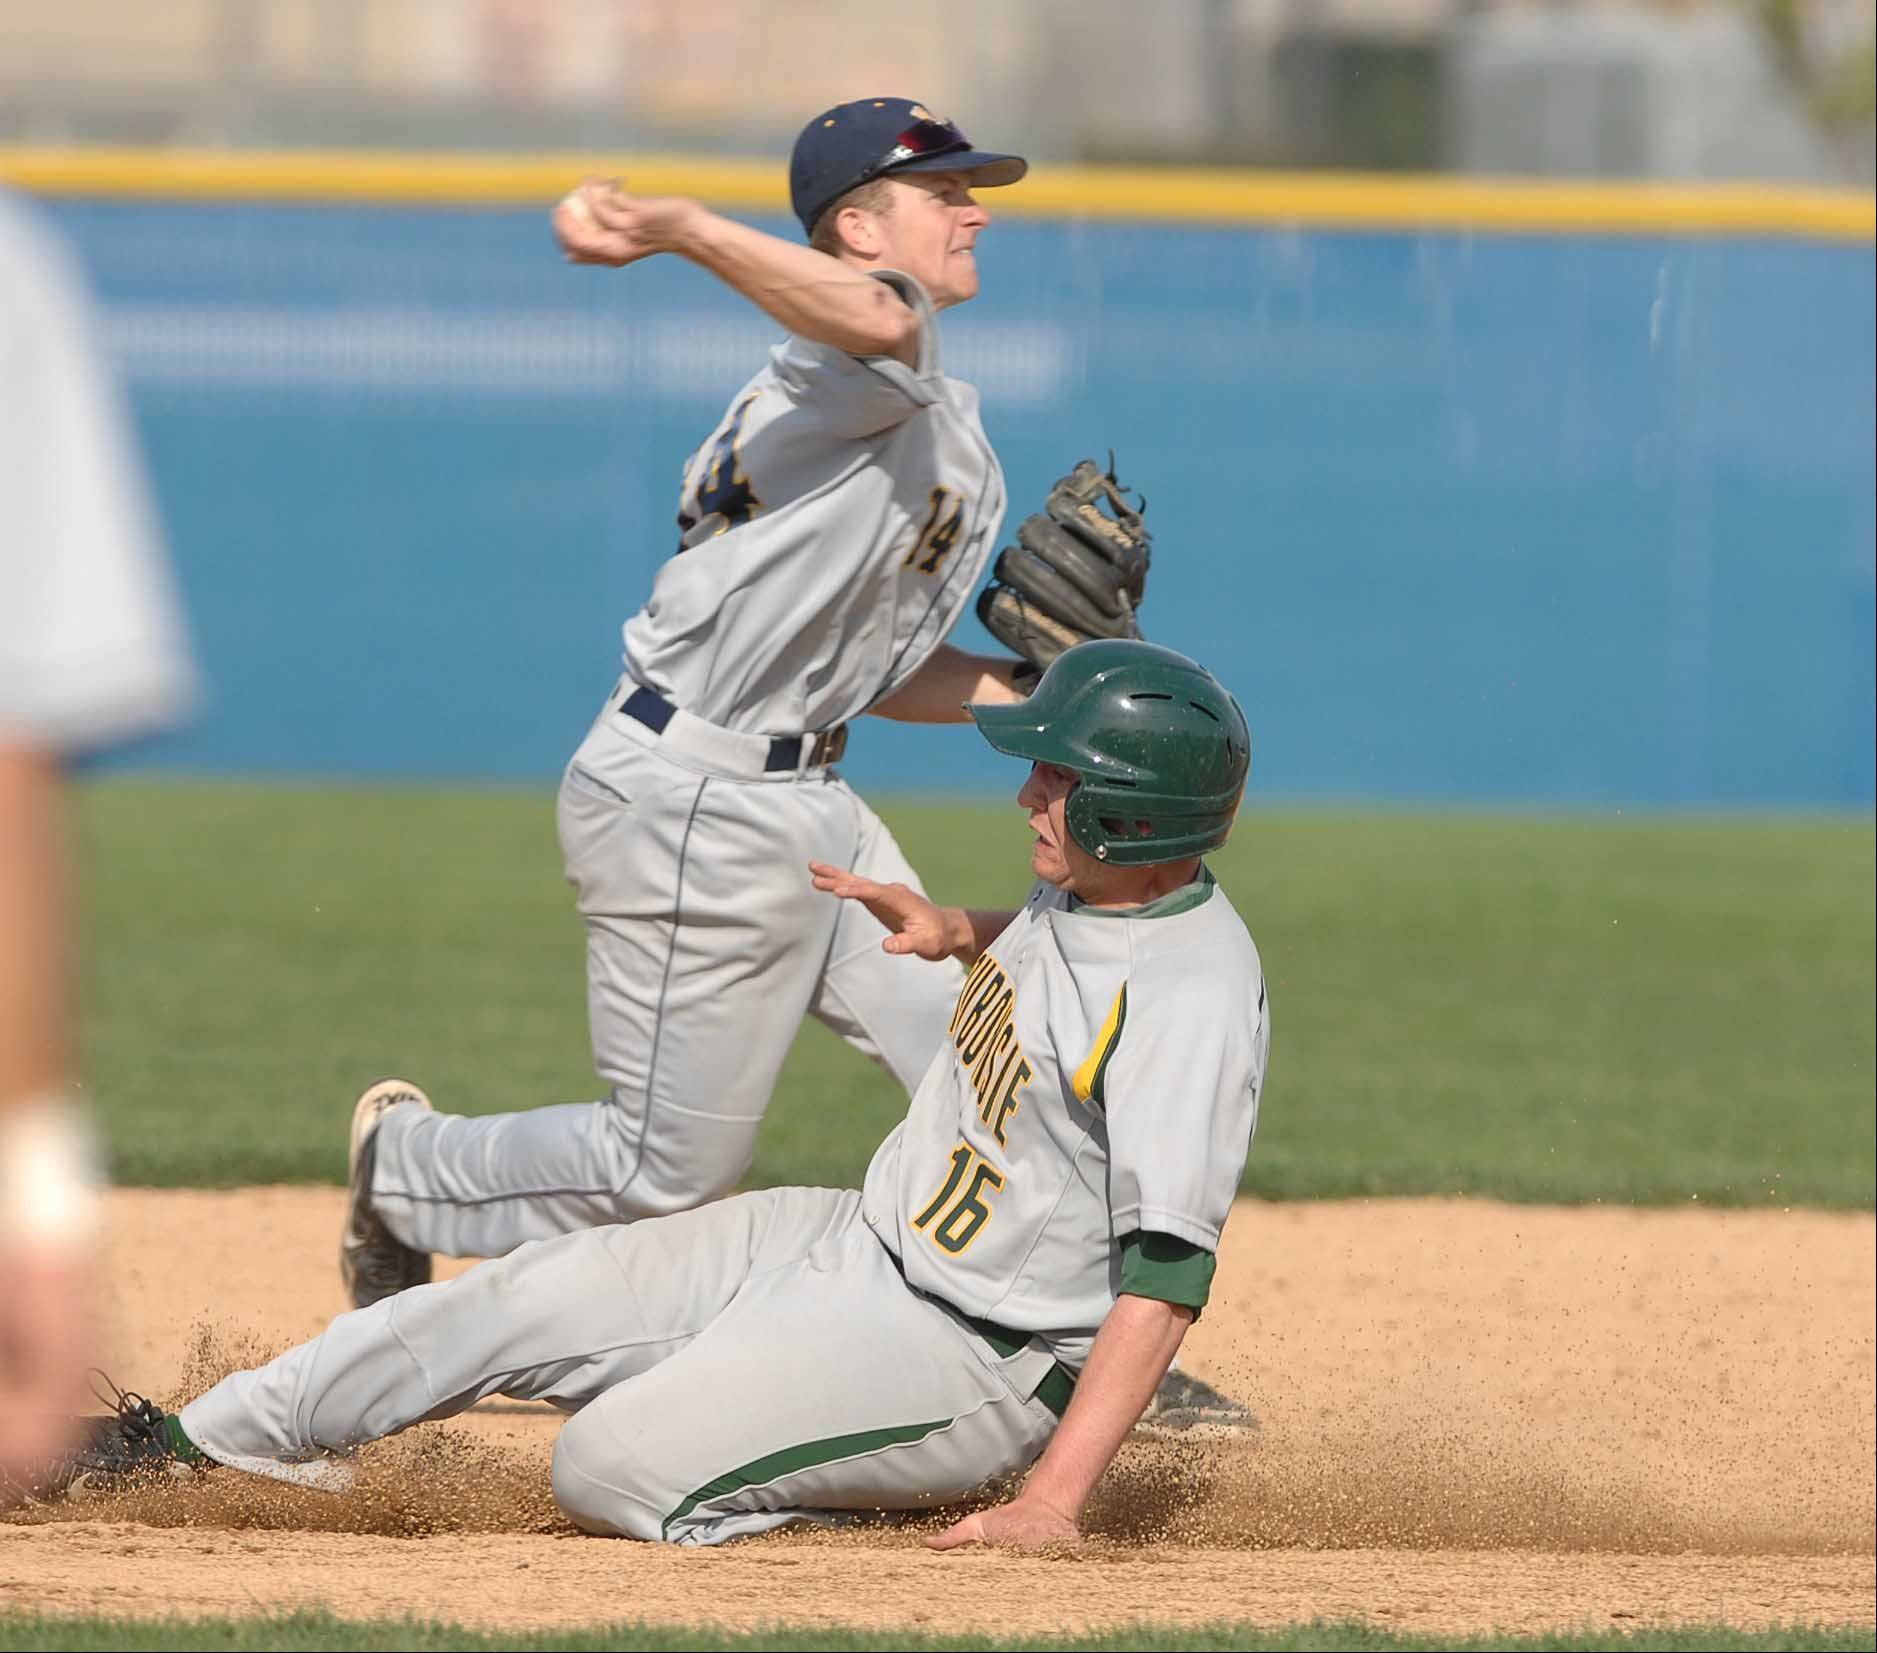 Mike Riesner of Neuqua,left, forces out Nick Drago of Waubonsie at second. This took place during the Waubonsie Valley at Neuqua Valley baseball game Tuesday.